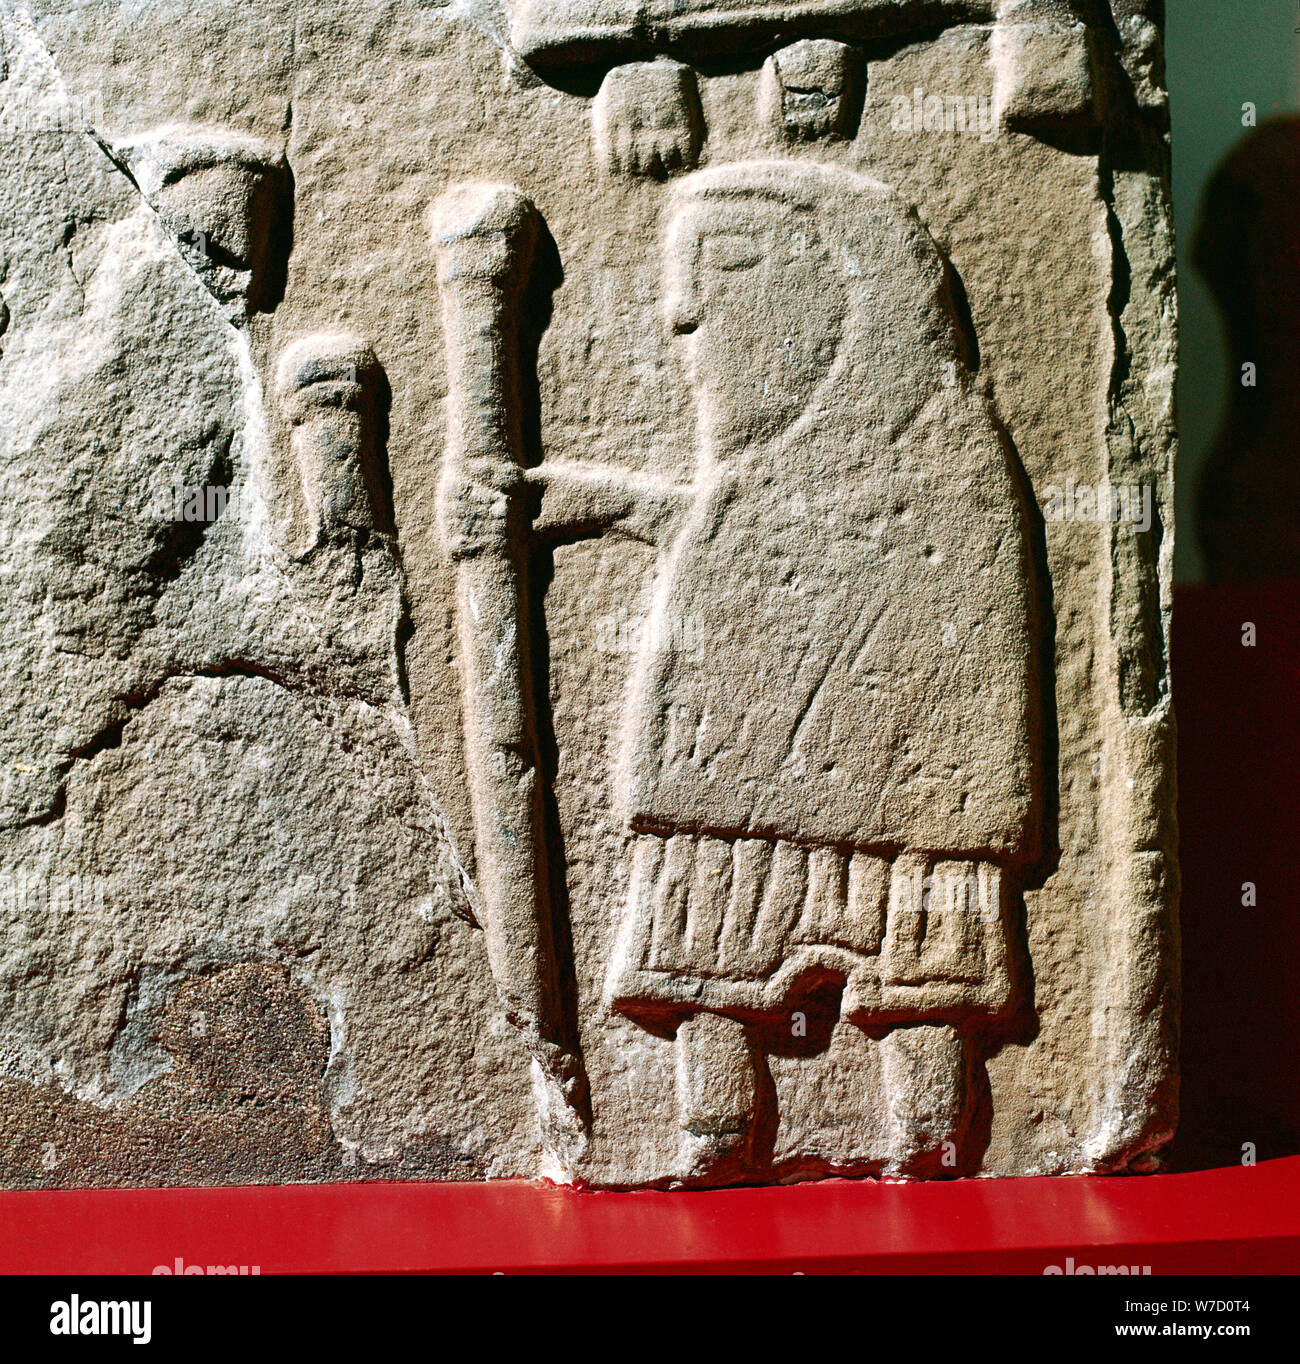 A Pict with hooded cloak & Pictish trousers, St.Vigeans, Scotland, c8th - 9th century. Artist: Unknown Stock Photo